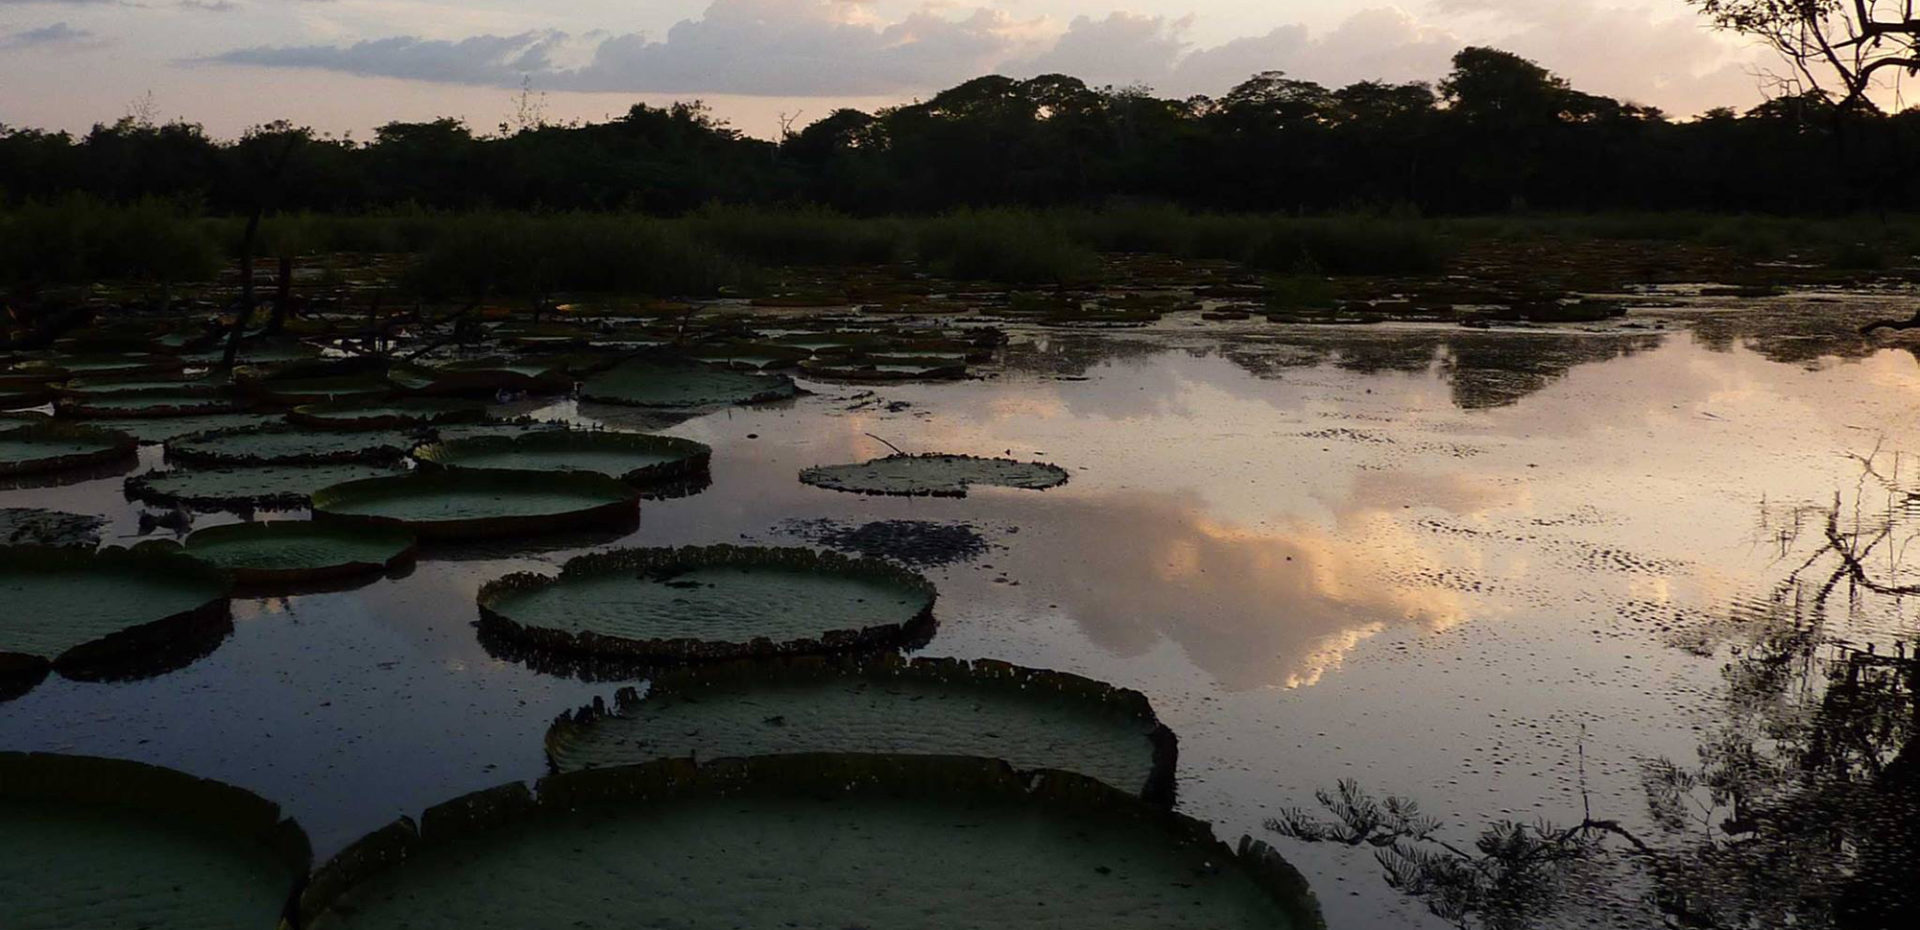 These giant Amazon water lilies (Victoria amazonica) grew near Karanambu in Guyana's Rupununi River. The pads can support the weight of a human child. Their white flowers bloom at dusk, emitting a potent perfume that attracts tens of golden beetles to an inner flower sanctum party. By morning, the flower has turned bright pink, as the beetles have completed pollinating it and depart. Then the flower wilts. Photo: Erica Gies.